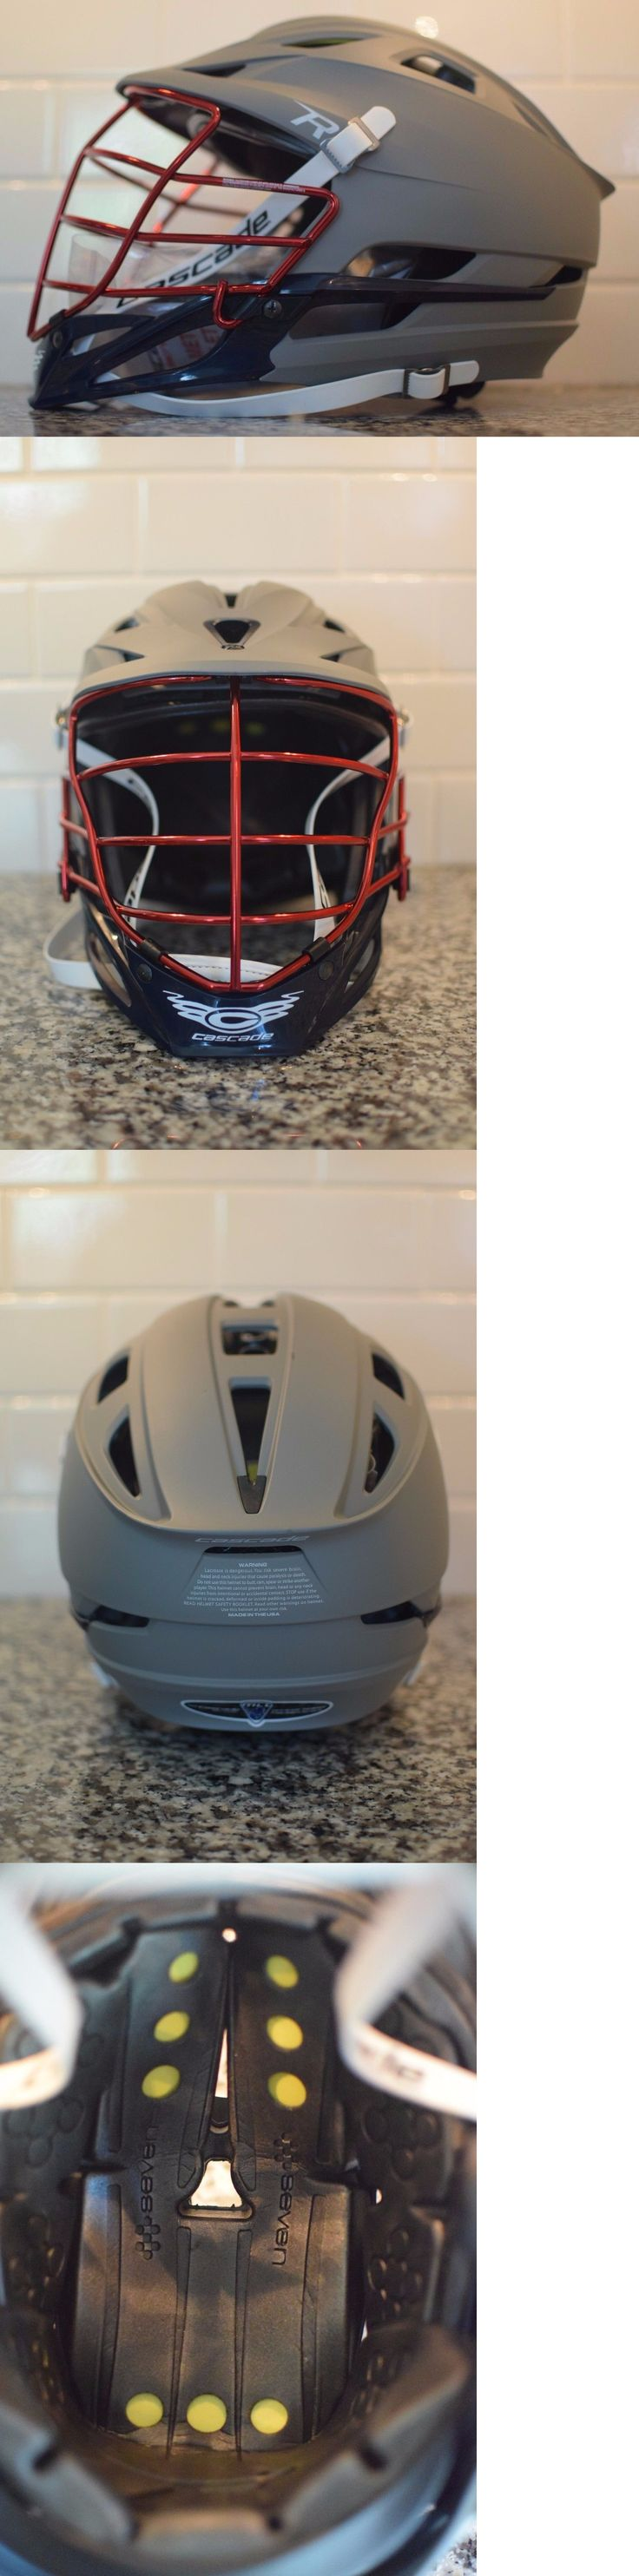 Protective Gear 62164: Cascade R Lacrosse Helmet - Matte Gray With Navy Chin And Red Chromanium Facemask -> BUY IT NOW ONLY: $225 on eBay!